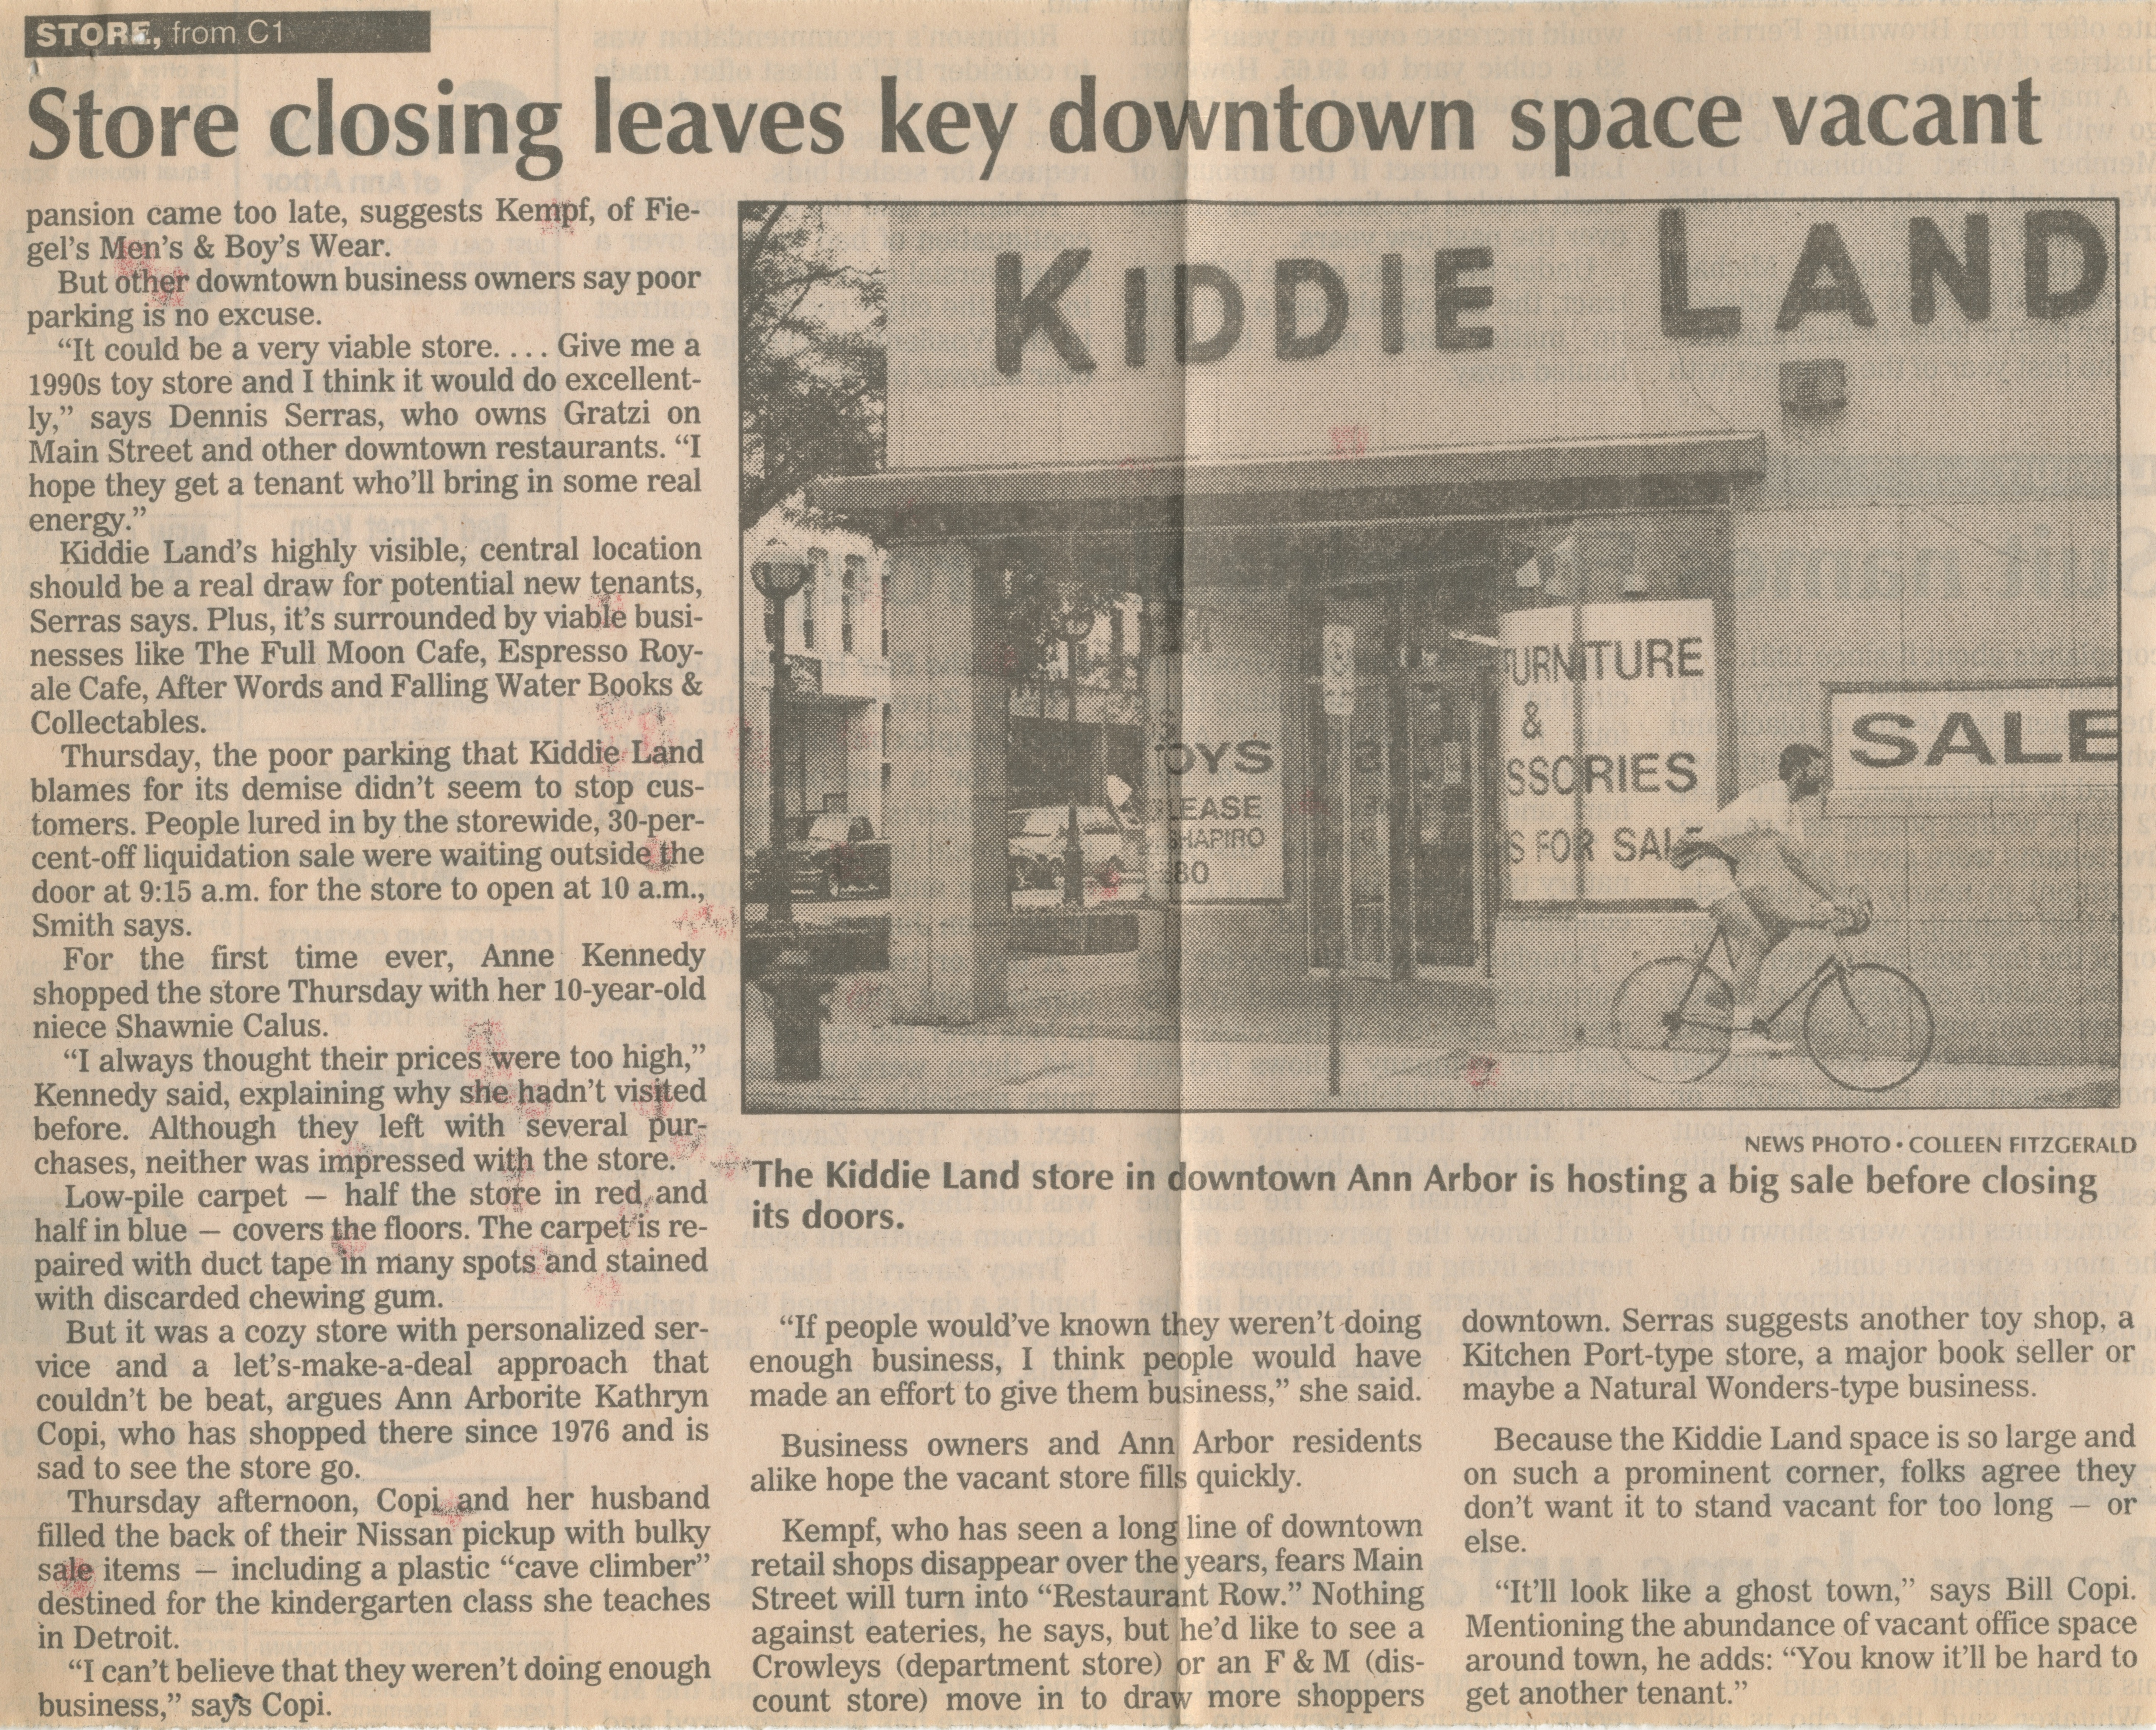 Kiddie Land giving up on downtown image